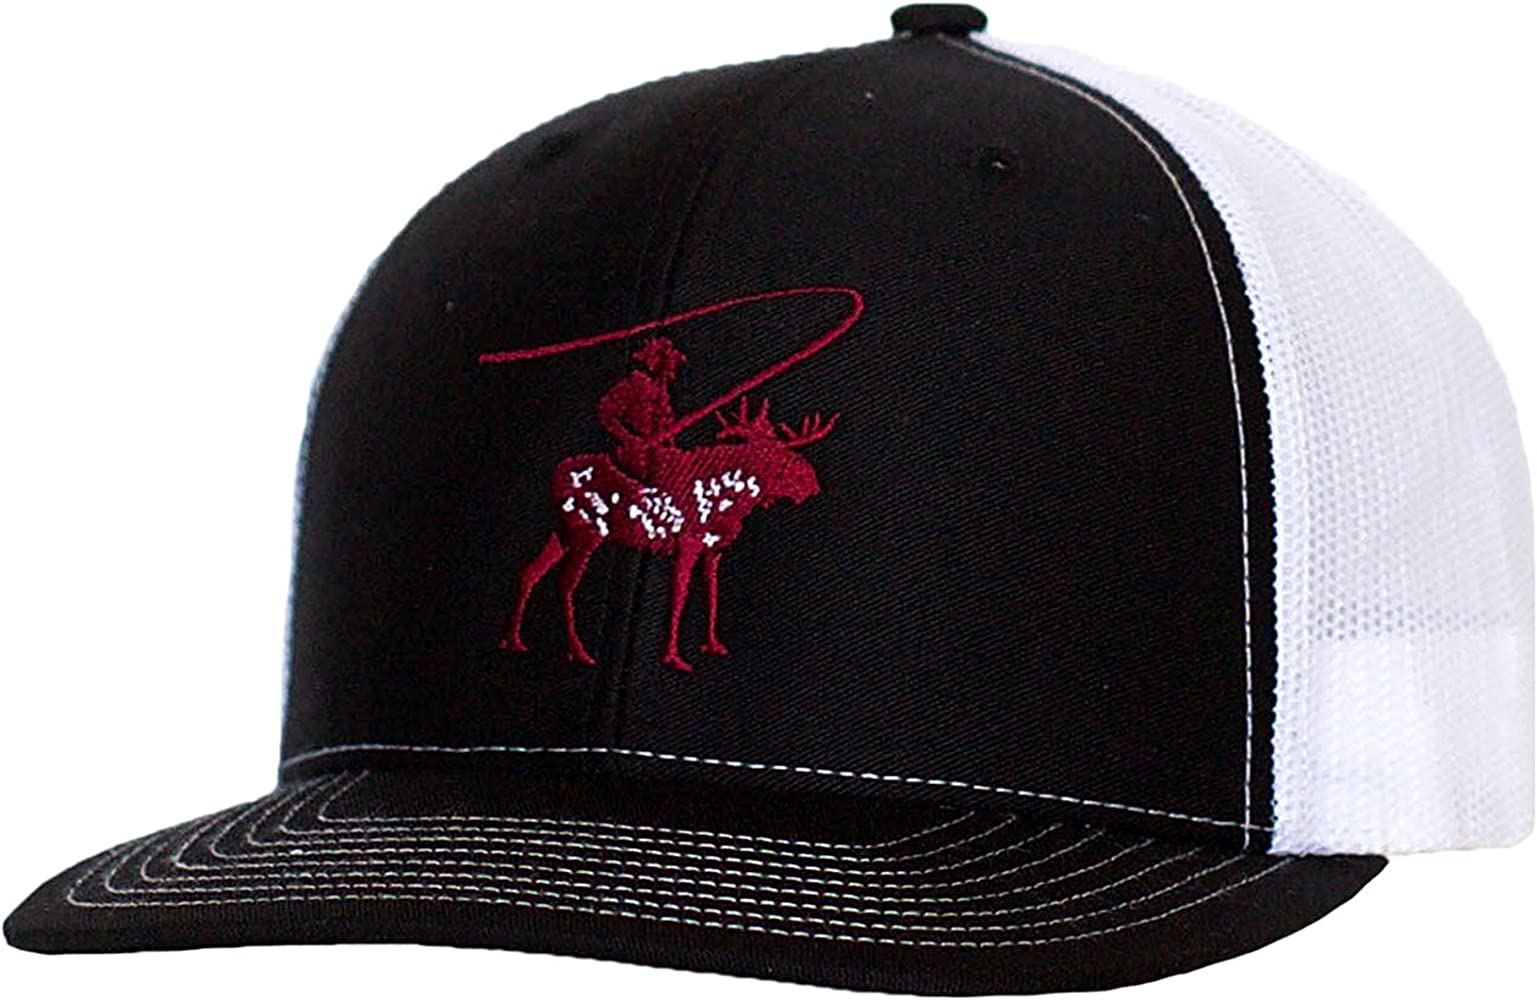 c5d1cc996 Trucker Hat – Extraordinary Man - Moose Fishing Adventure Series